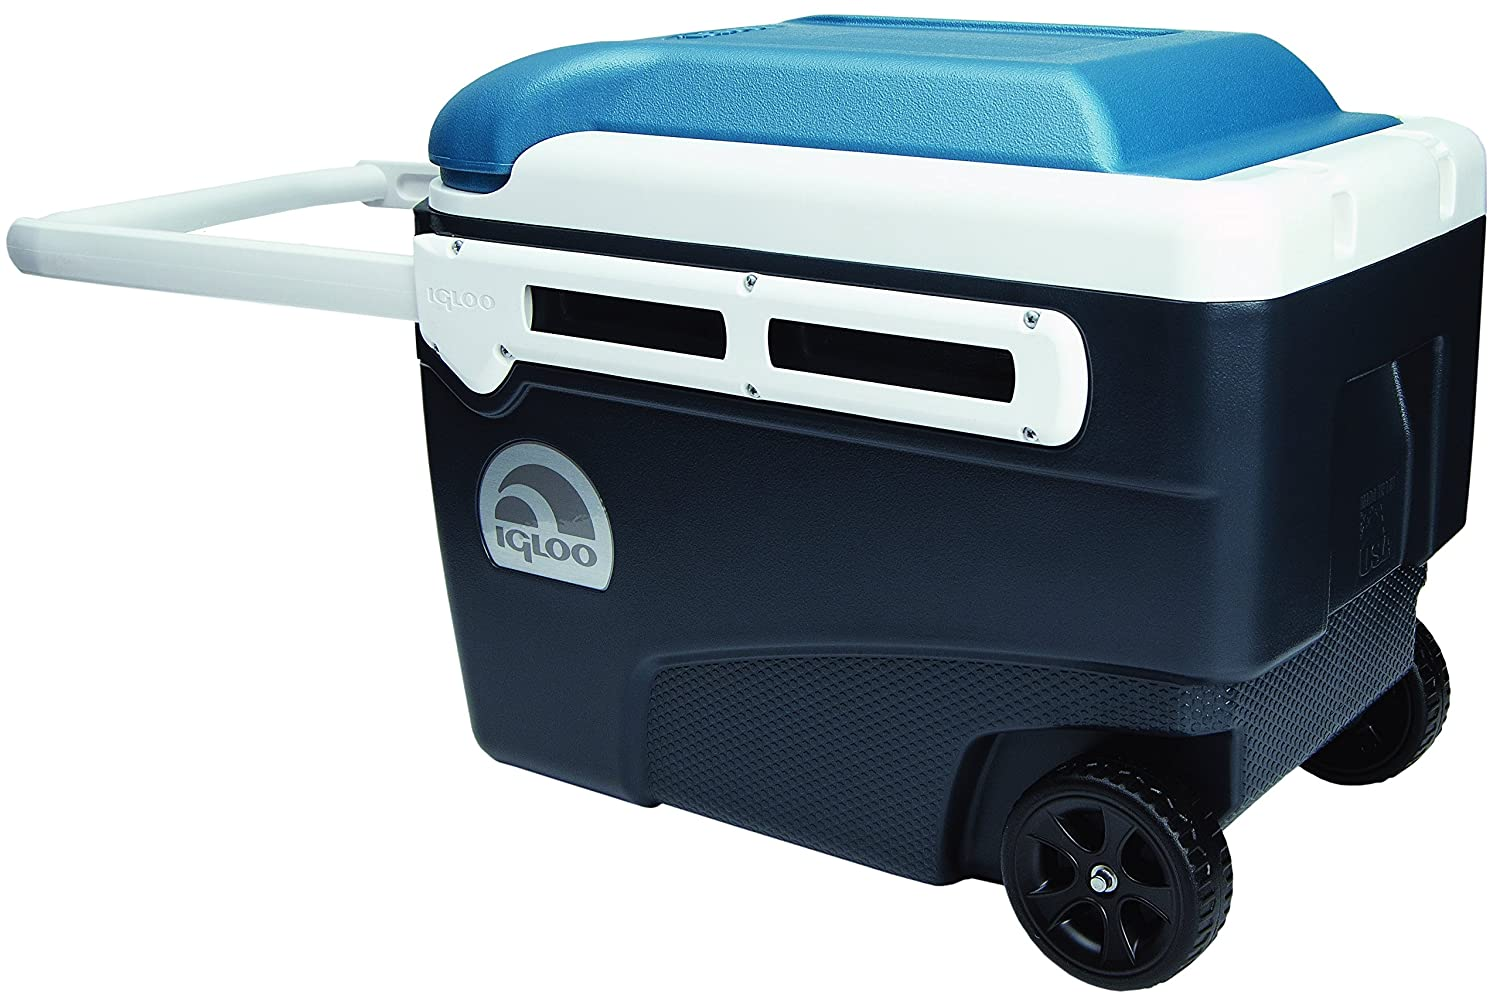 Igloo MaxCold Glide Roller Cooler, Jet Carbon Ice Blau Weiß, 40 quart by Igloo